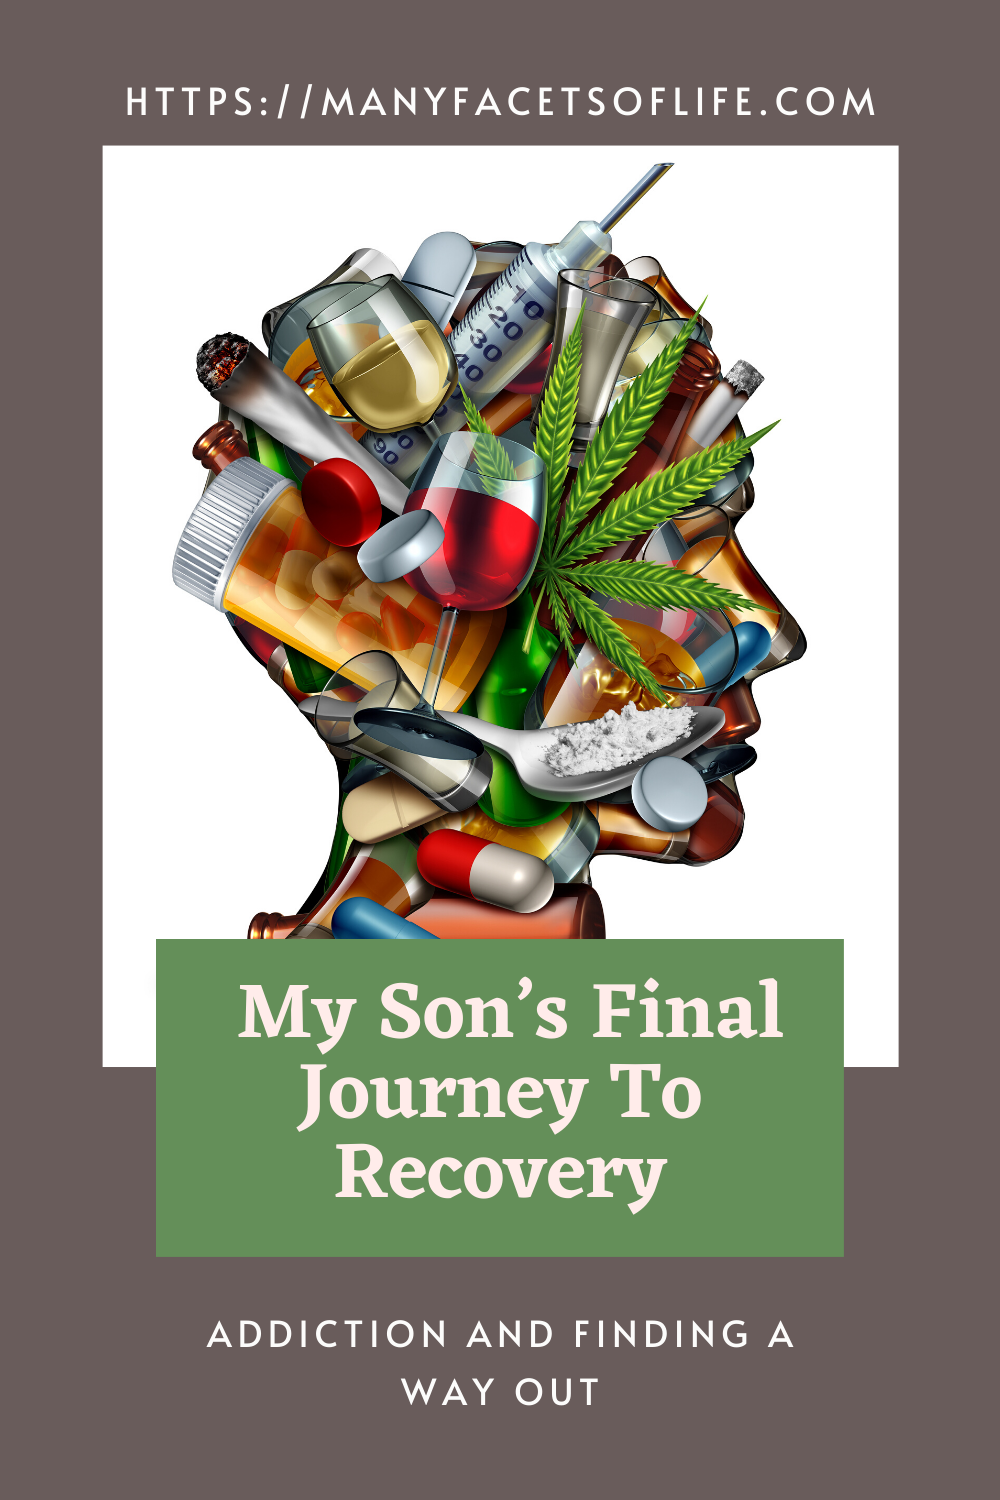 My son's final journey to recovery